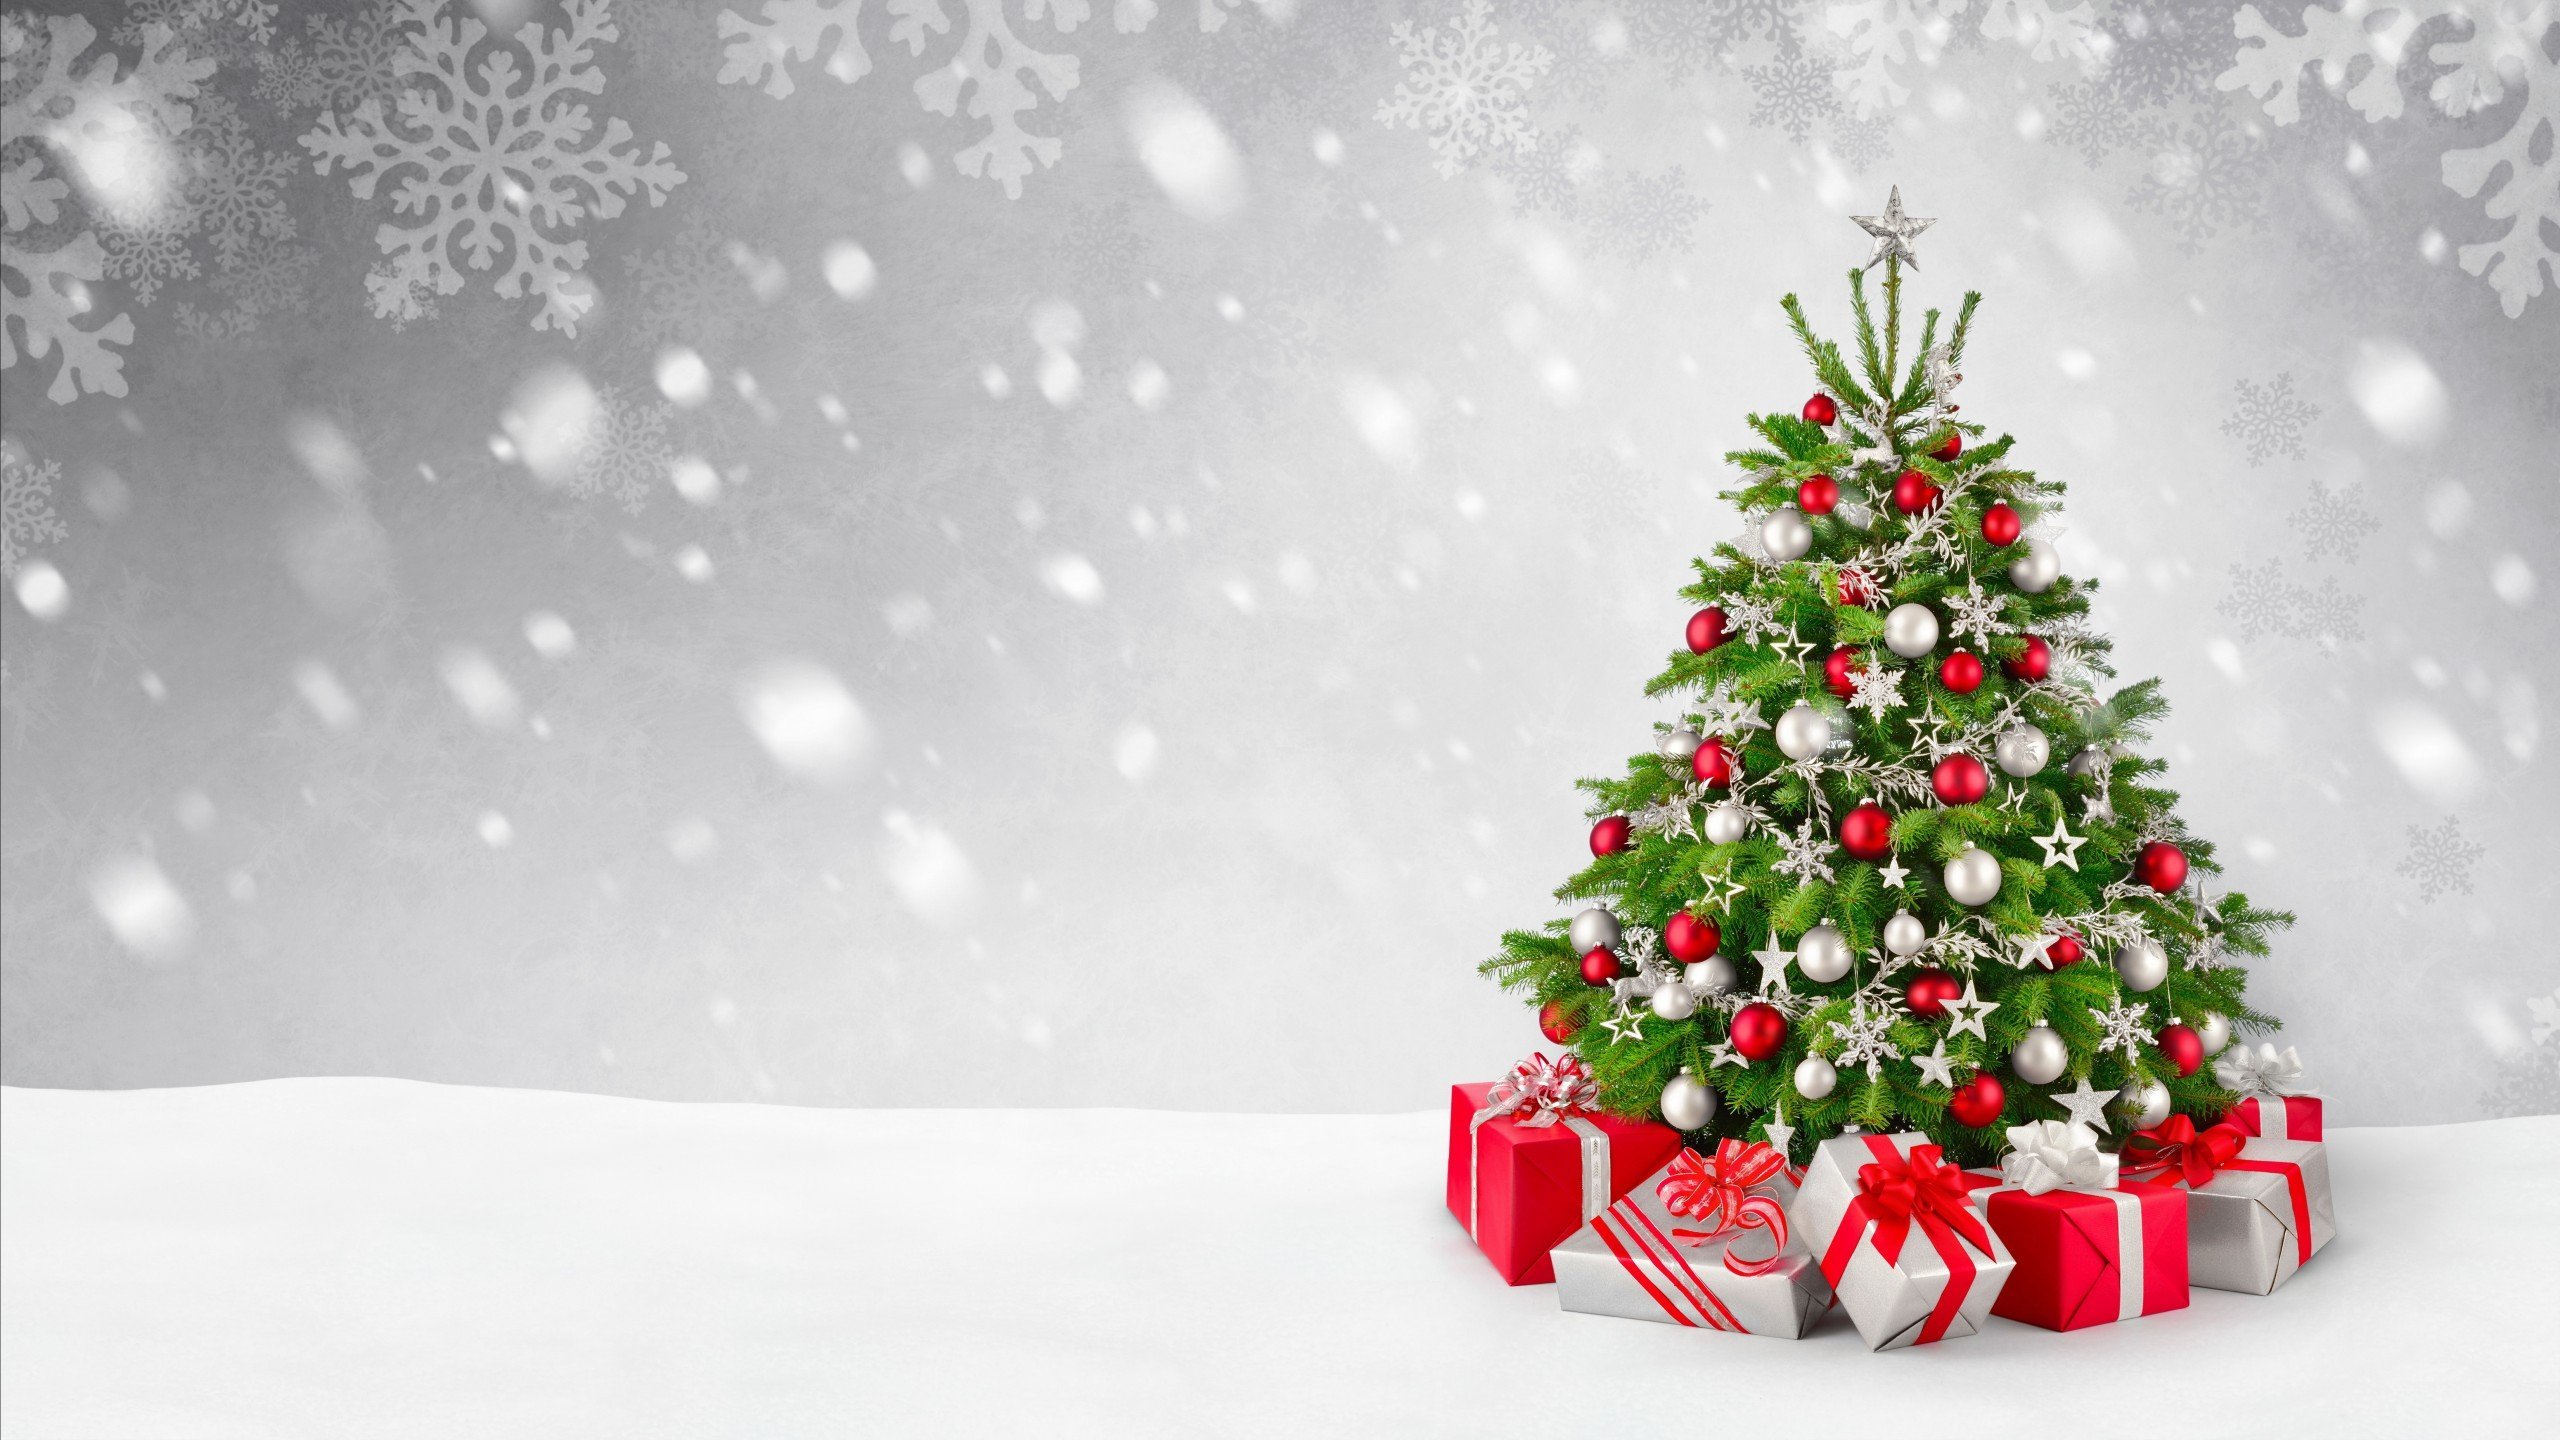 20 Beautiful Christmas HD Desktop Wallpapers 2560x1440 High Quality 2560x1440